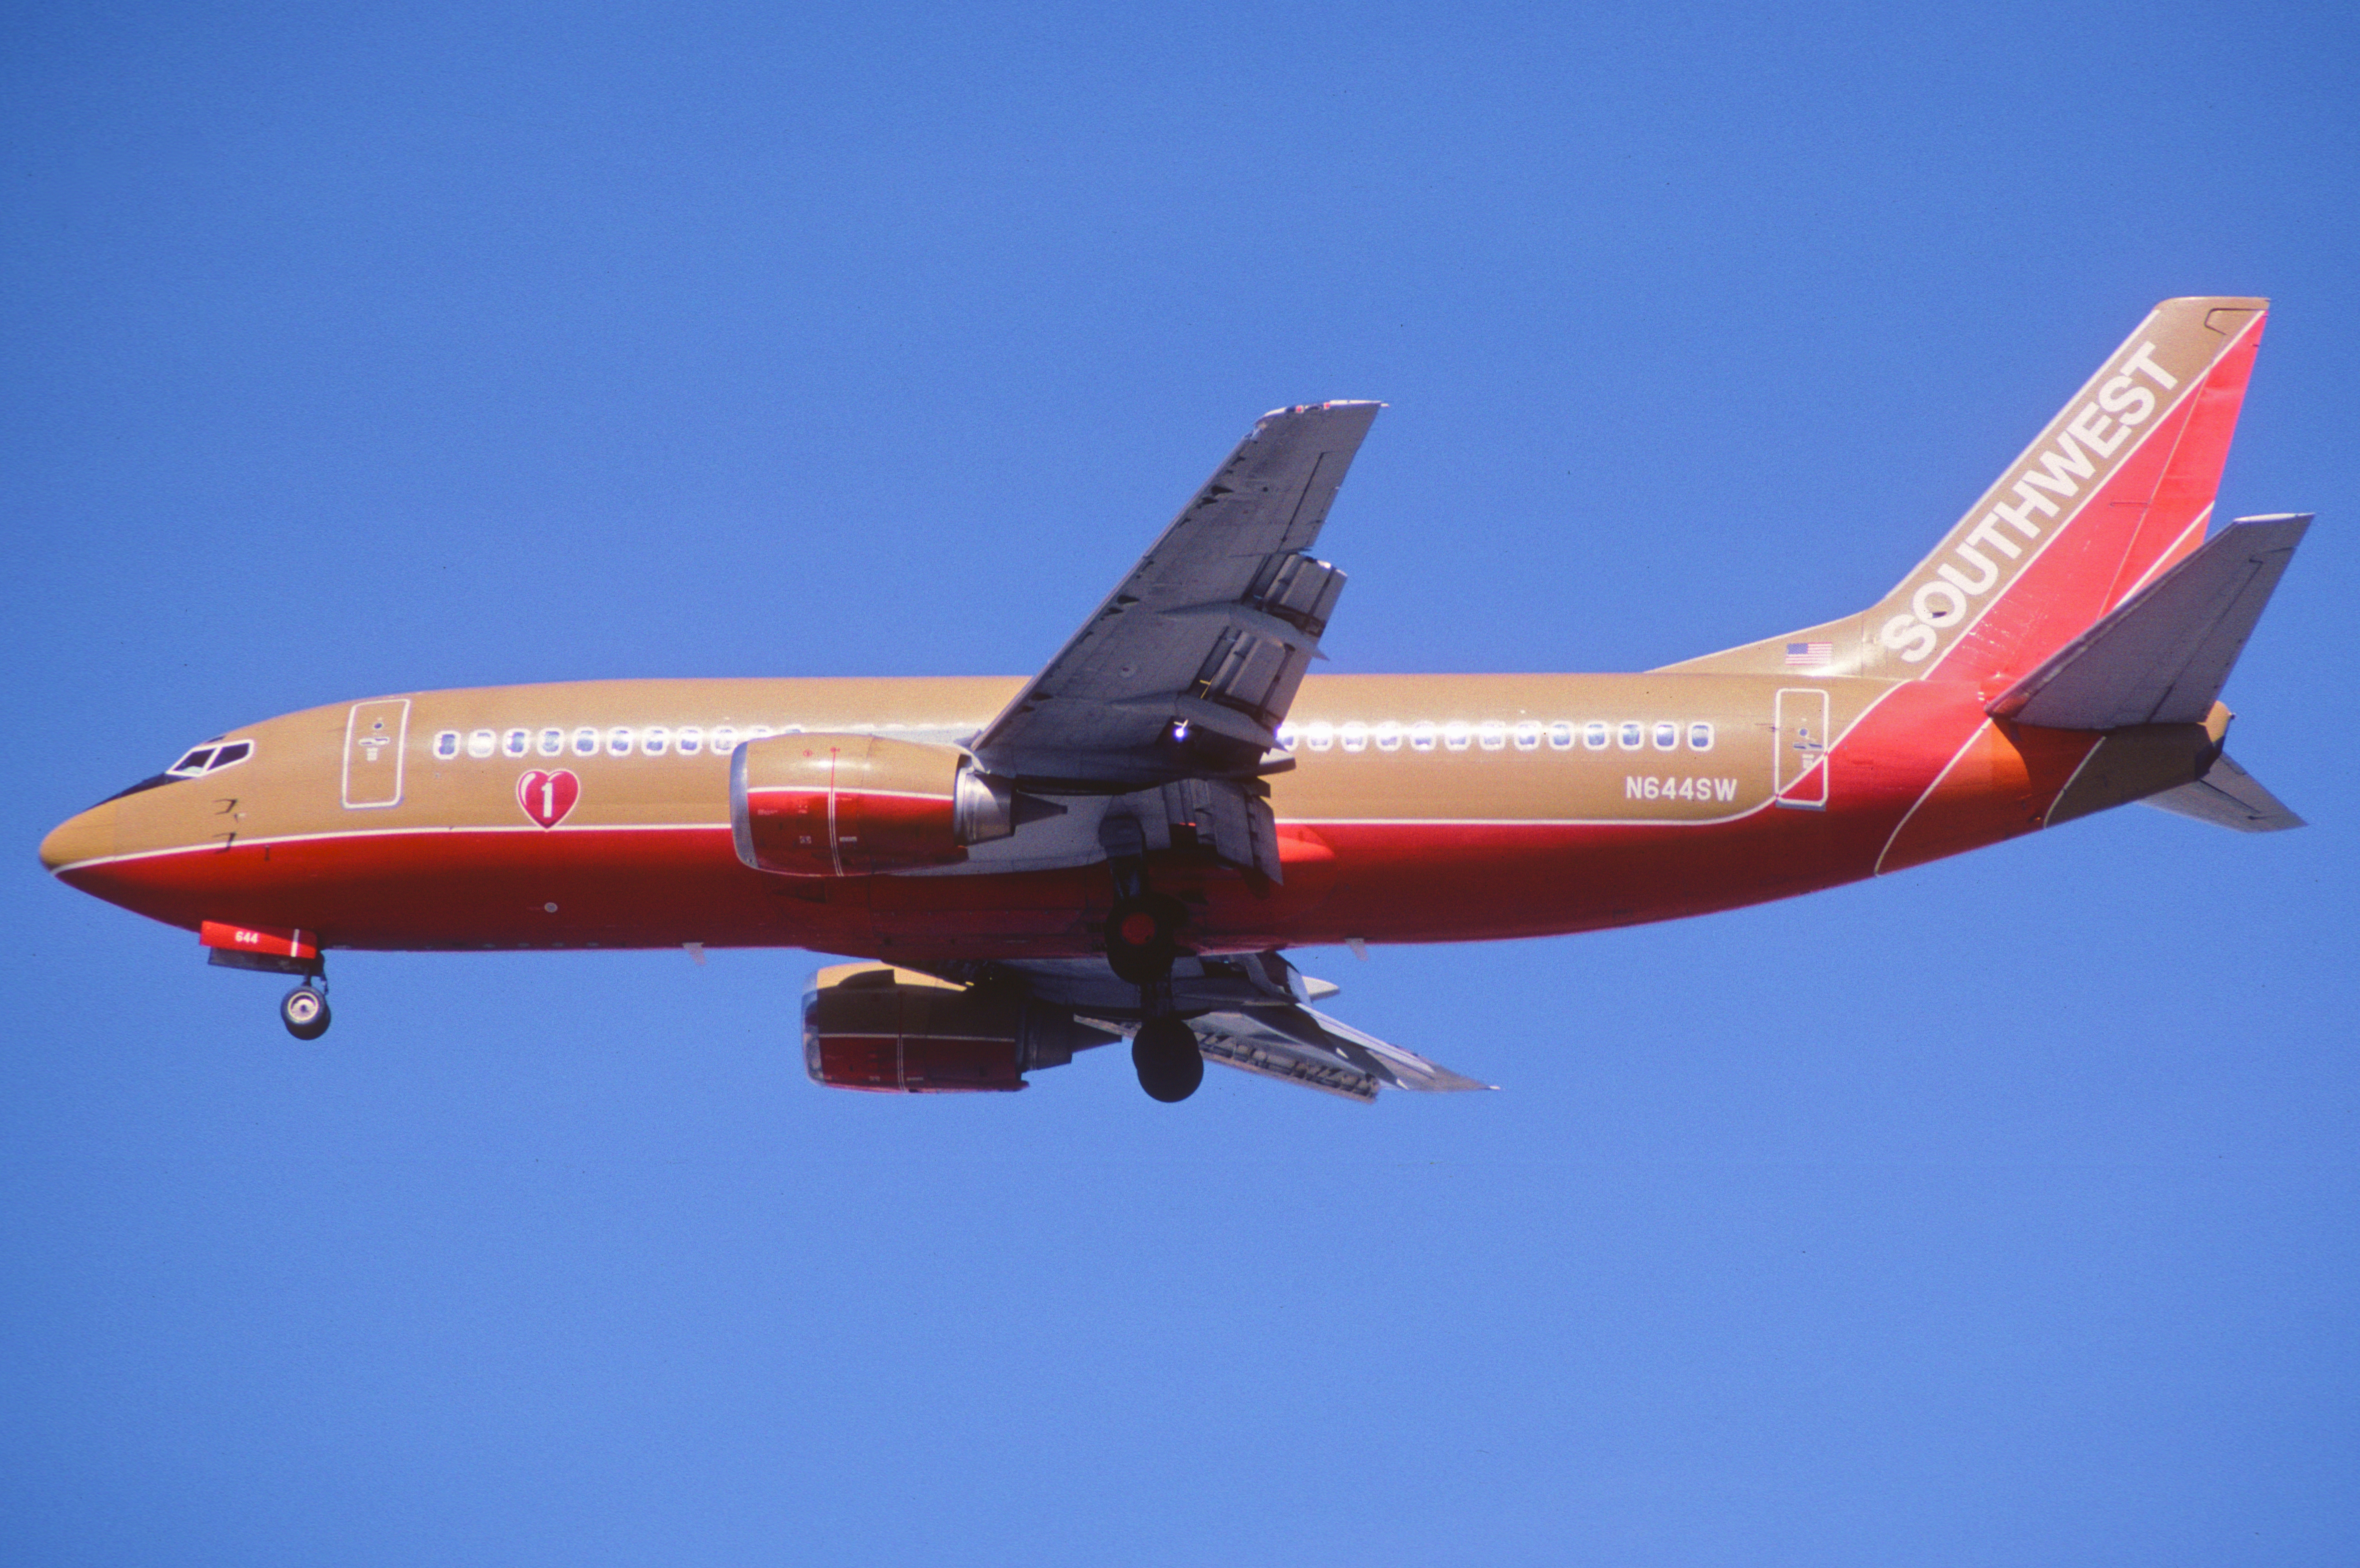 340gh - Southwest Airlines Boeing 737-300; [emailprotected];01.03.2005